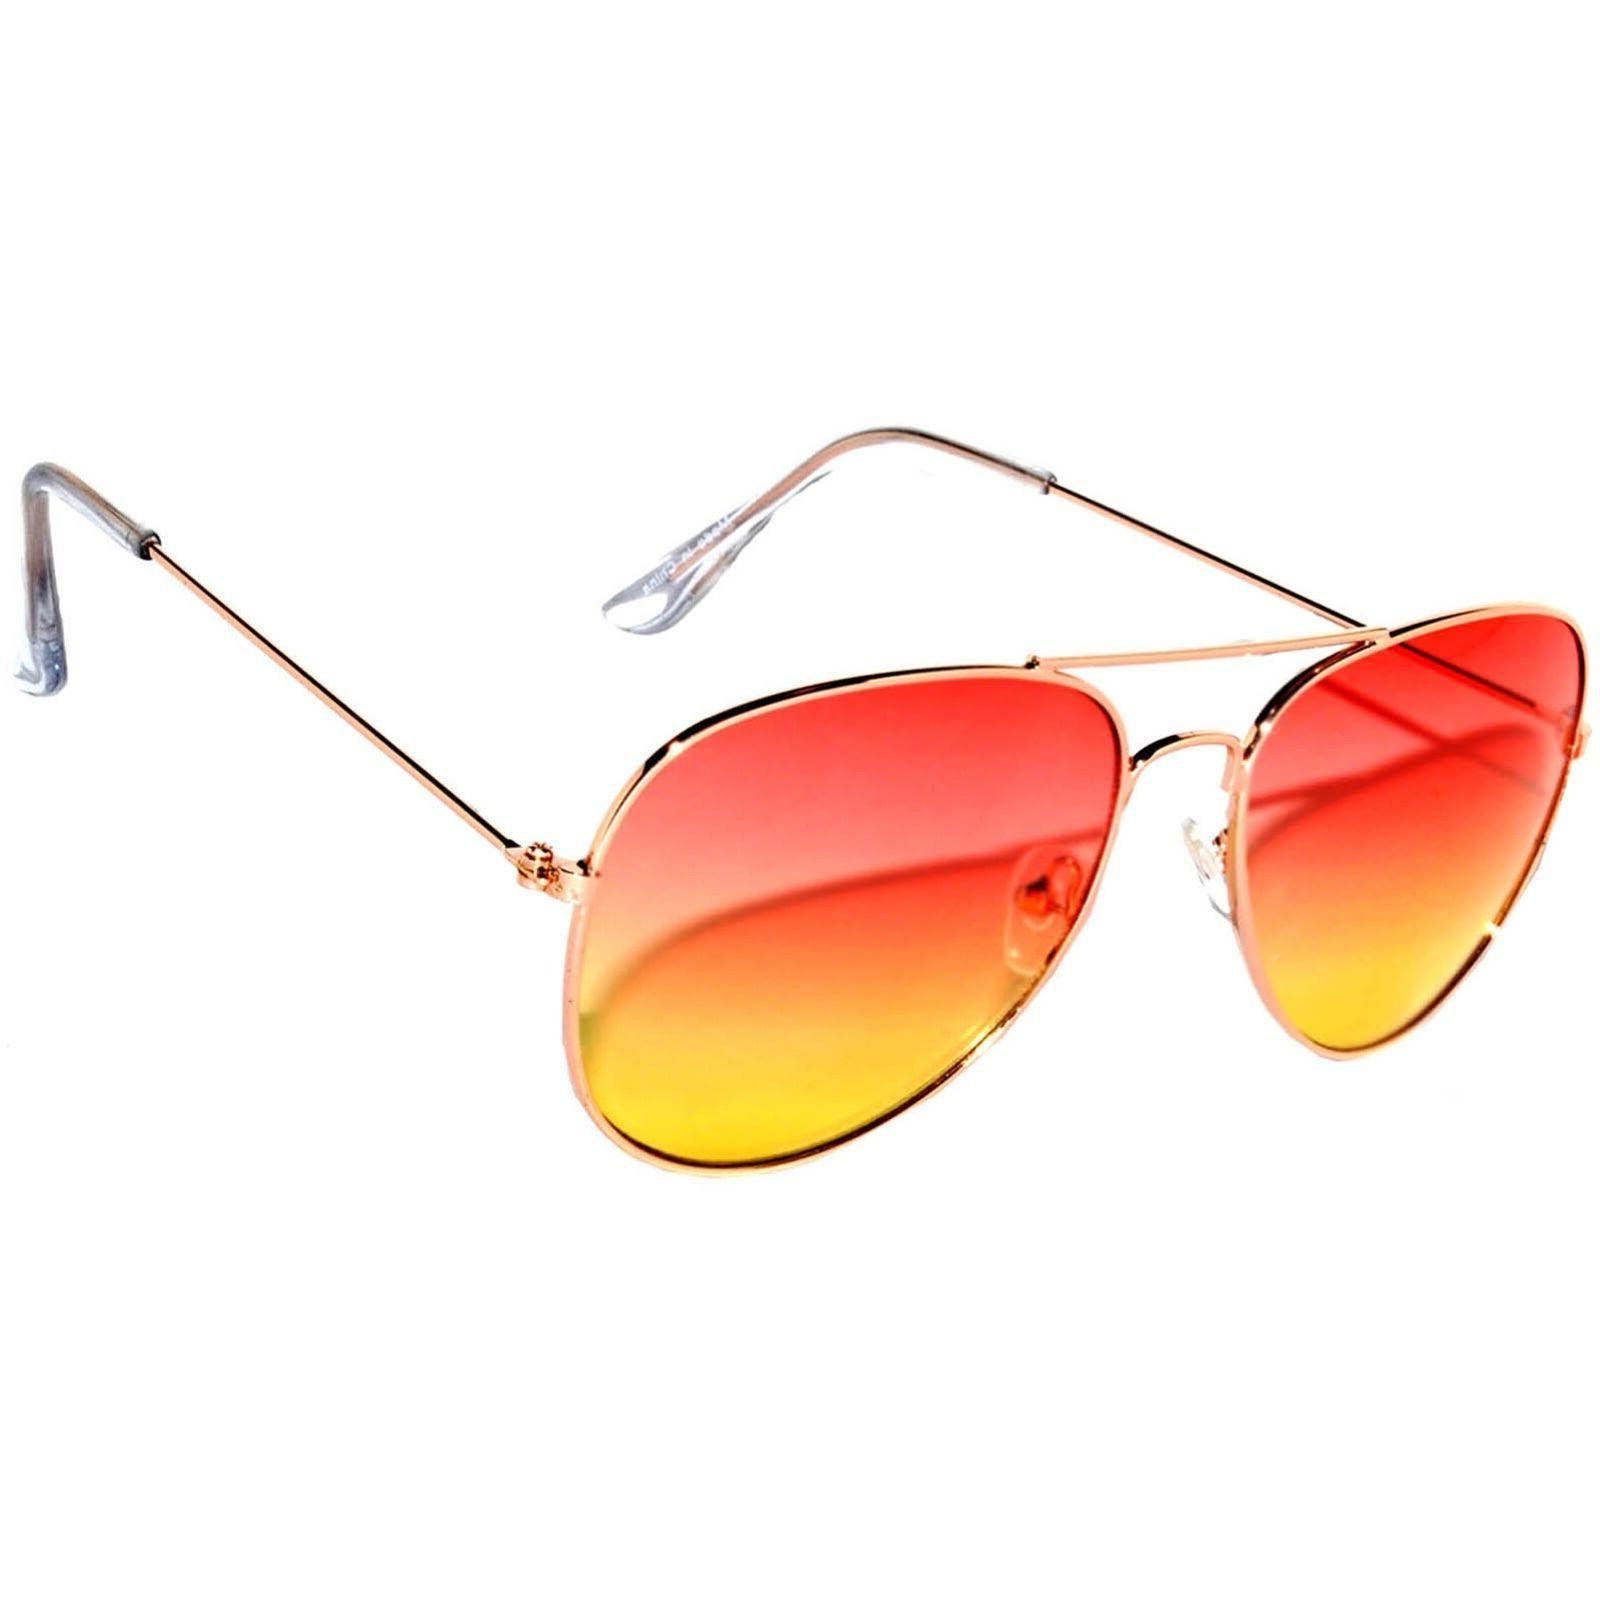 OWL Sunglasses 064 C2 Women's Men's Aviator Gold Frame R